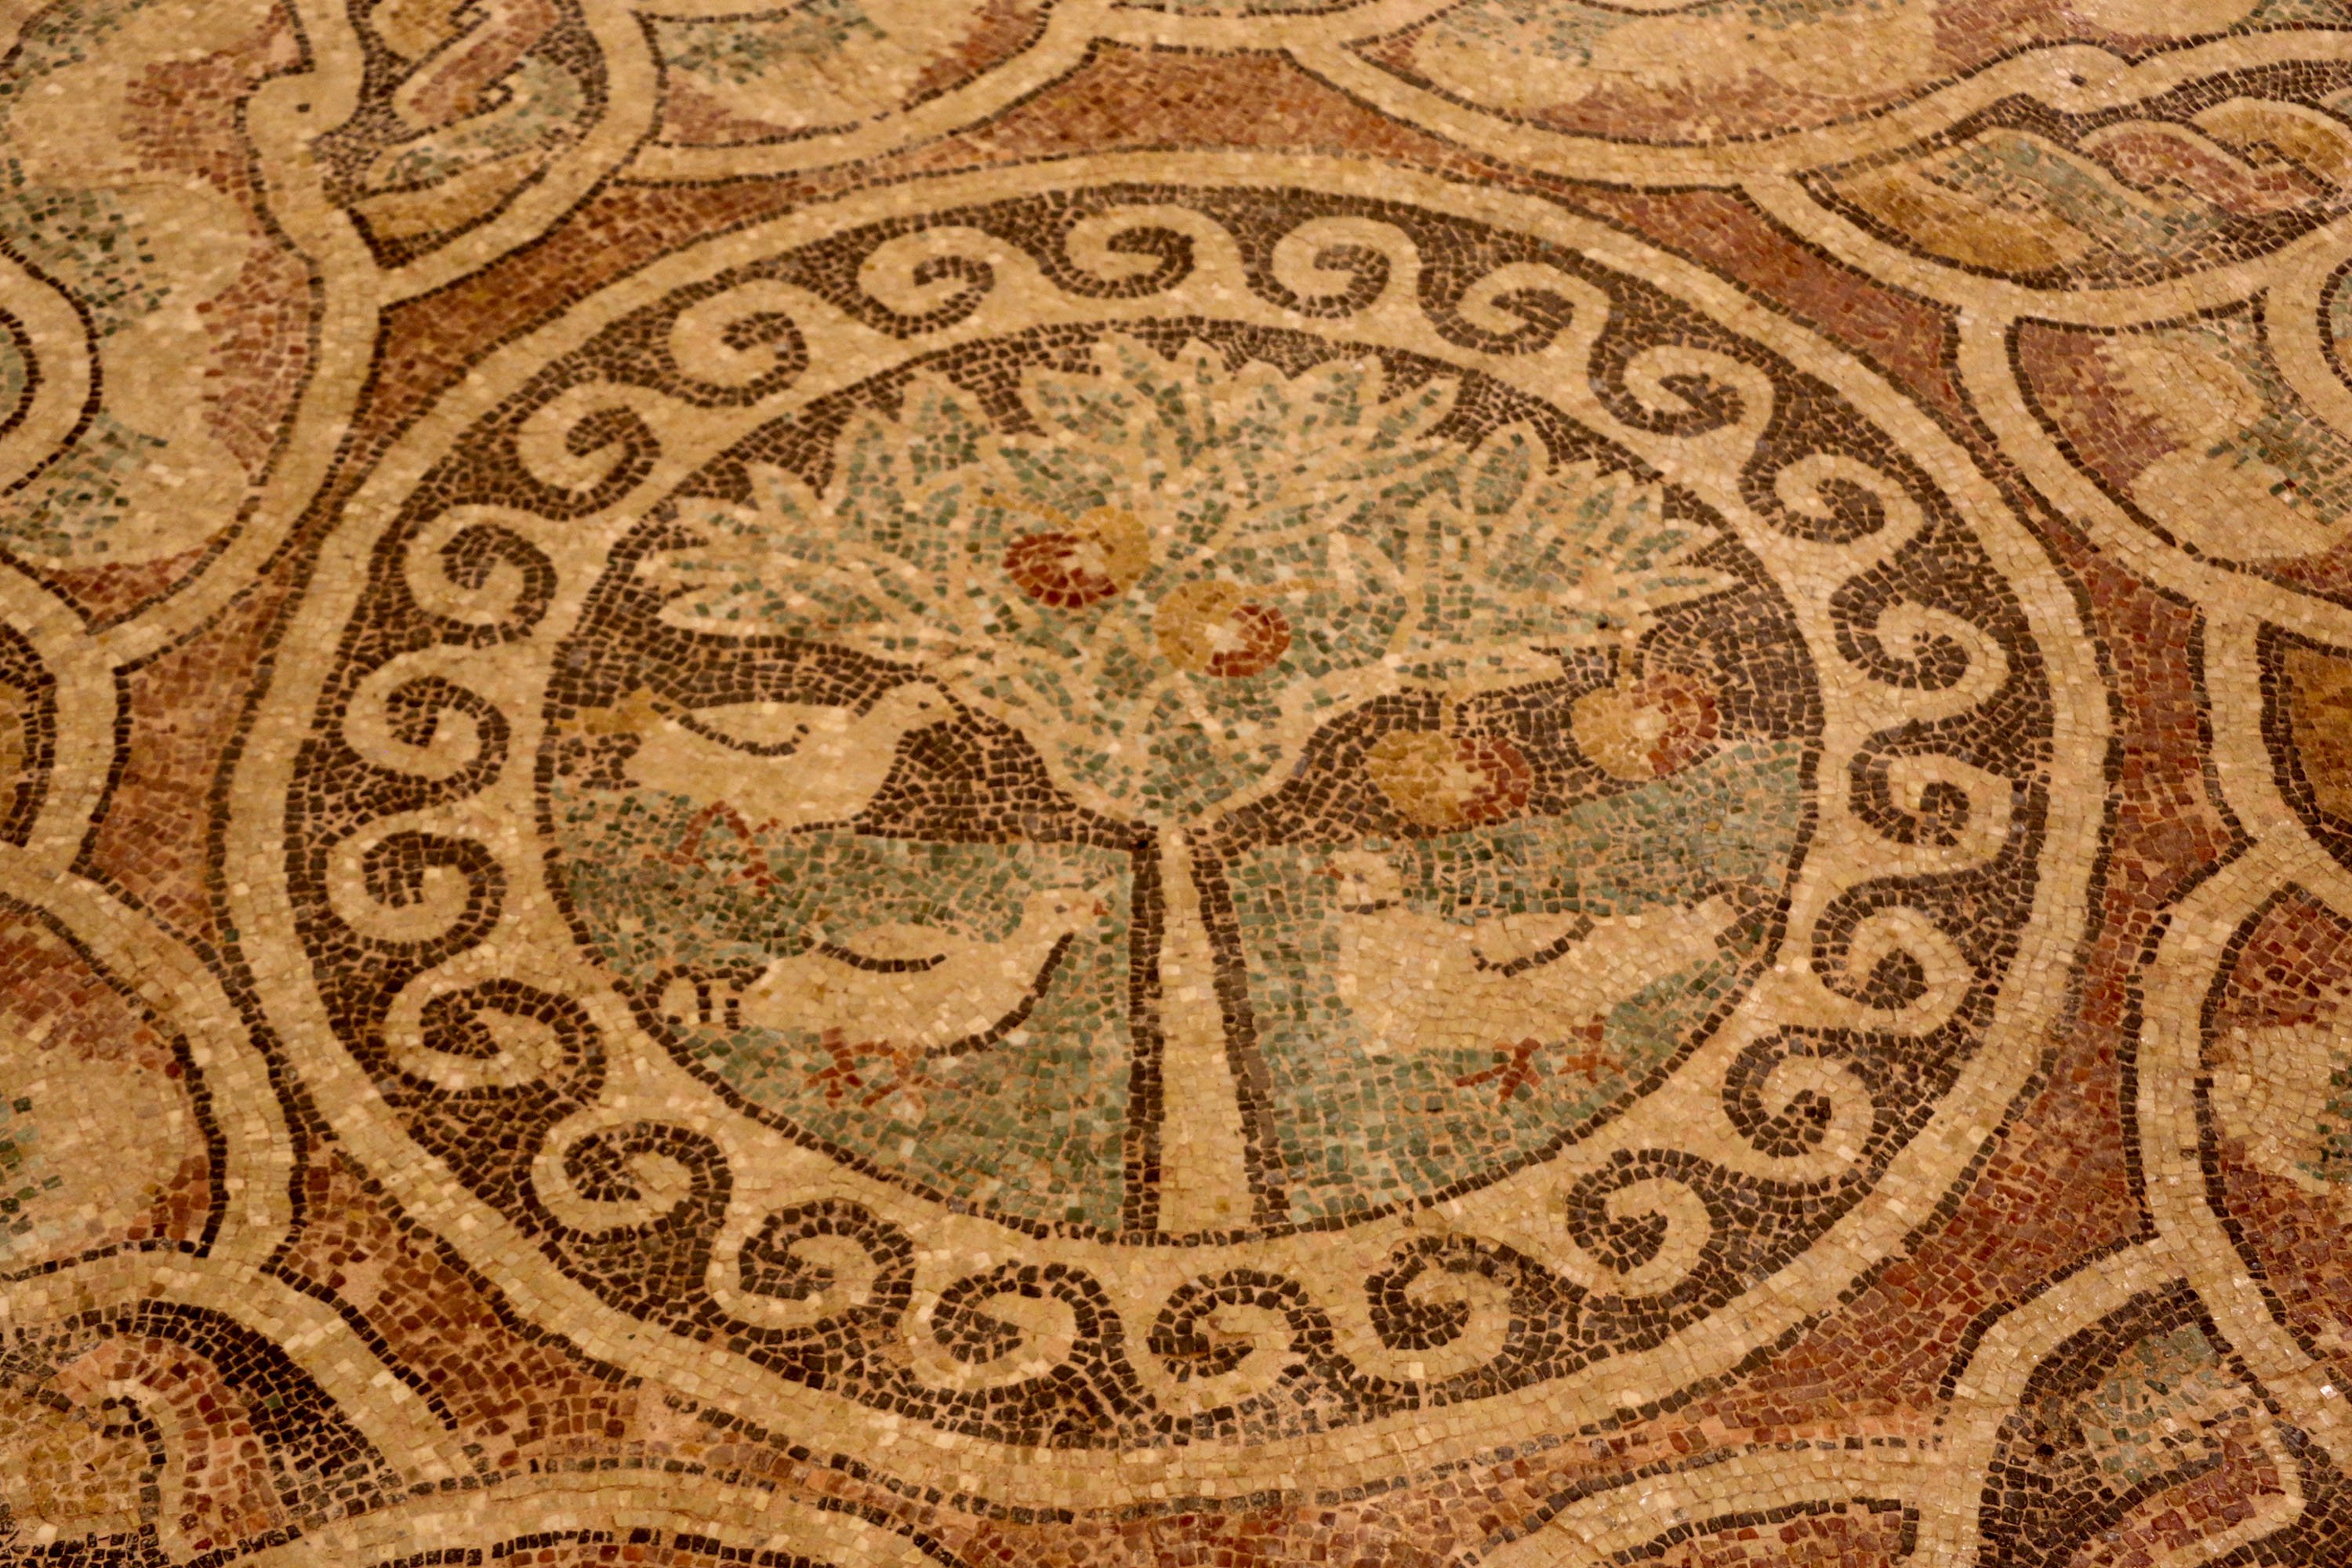 The 1,800-year-old mosaic with apple figures in Amasya. (DHA Photo)